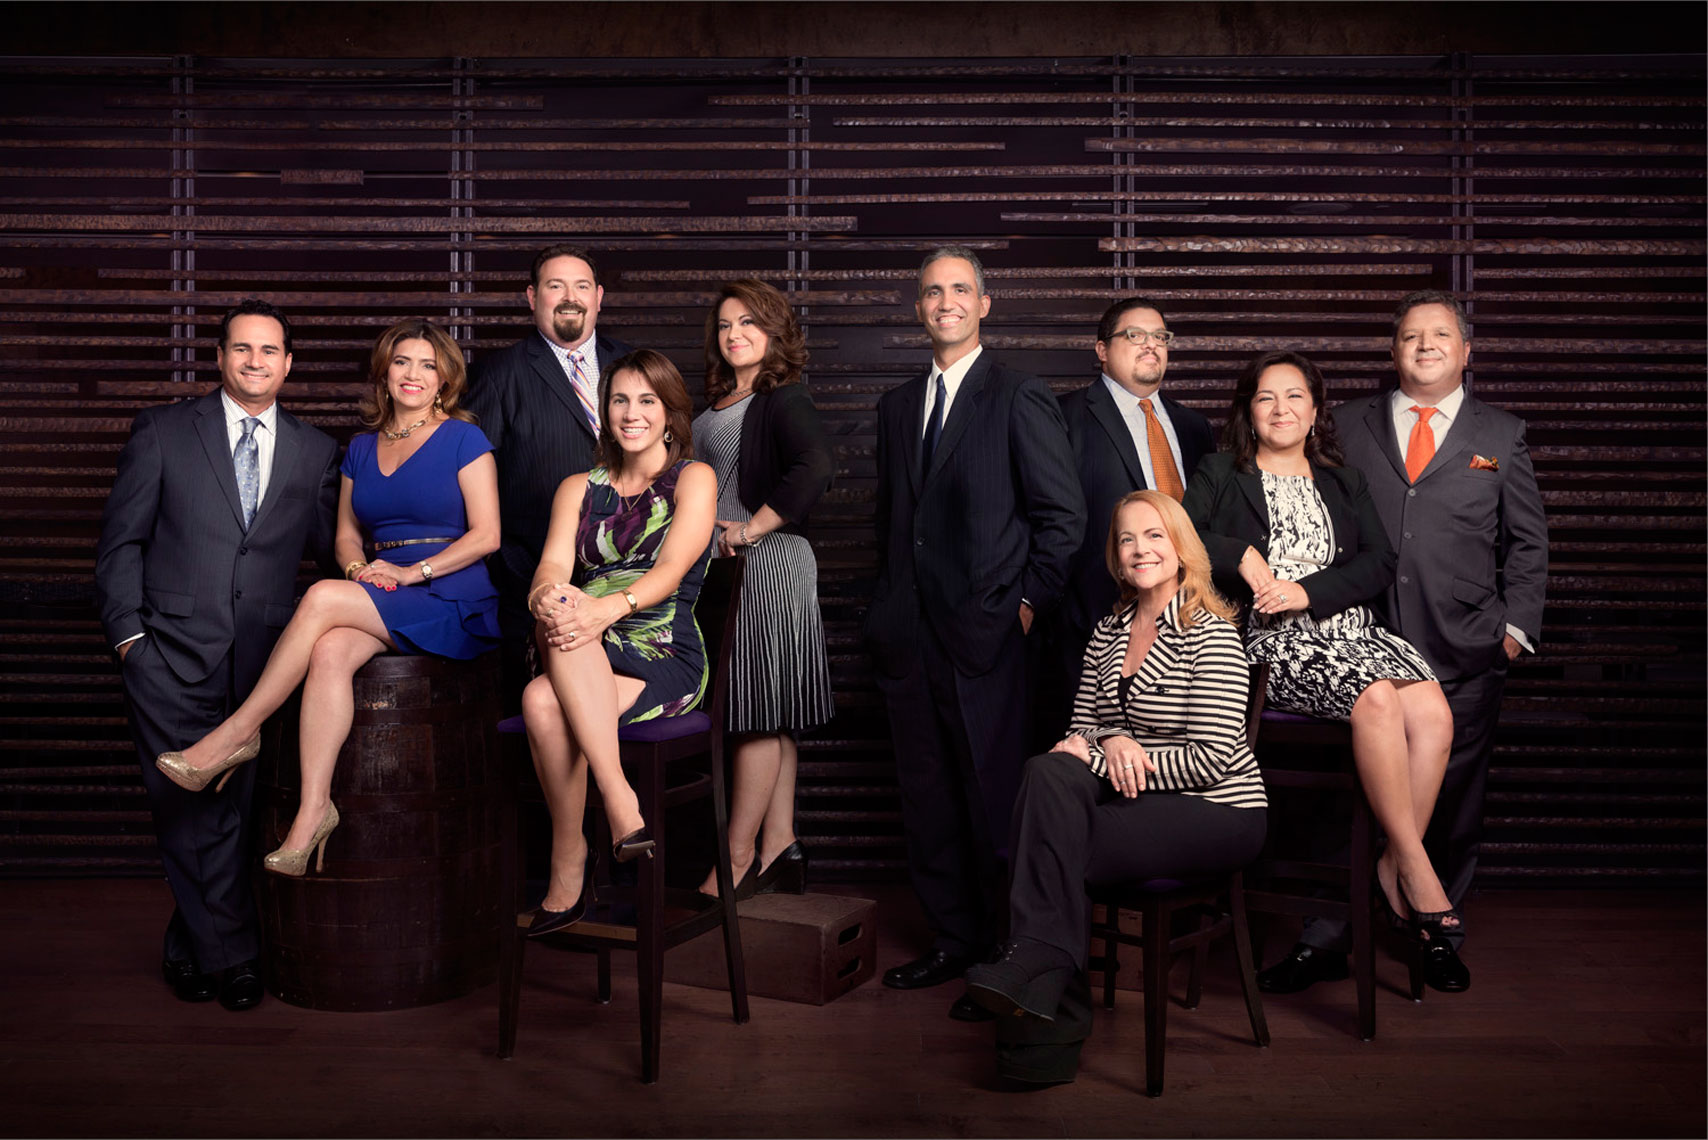 Washingtonian Magazine Feature: New Hispanic Wave: Bert Gomez,  Susan Isabel Santana, Luis CdeBaca, Cristina Antelo, Lorena Chambers,  Andrés W. López, Mark Hugo Lopez, Giovanna Huyke, Karla Iguina, Manuel Iguina